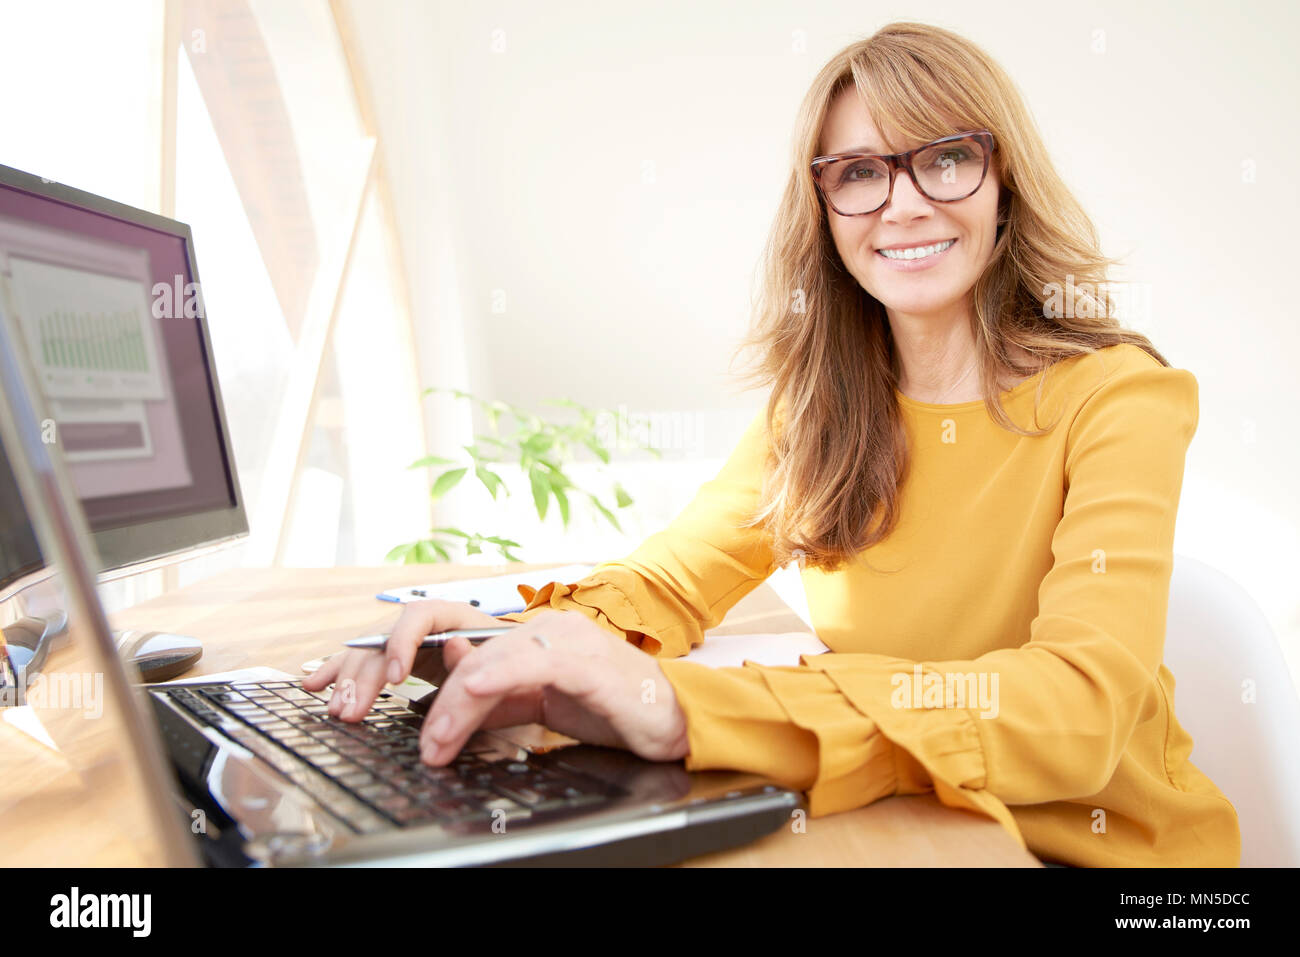 Portrait of a smiling middle aged woman typing on laptop while sitting at desk et à la recherche à l'appareil photo. Bureau à domicile. Photo Stock